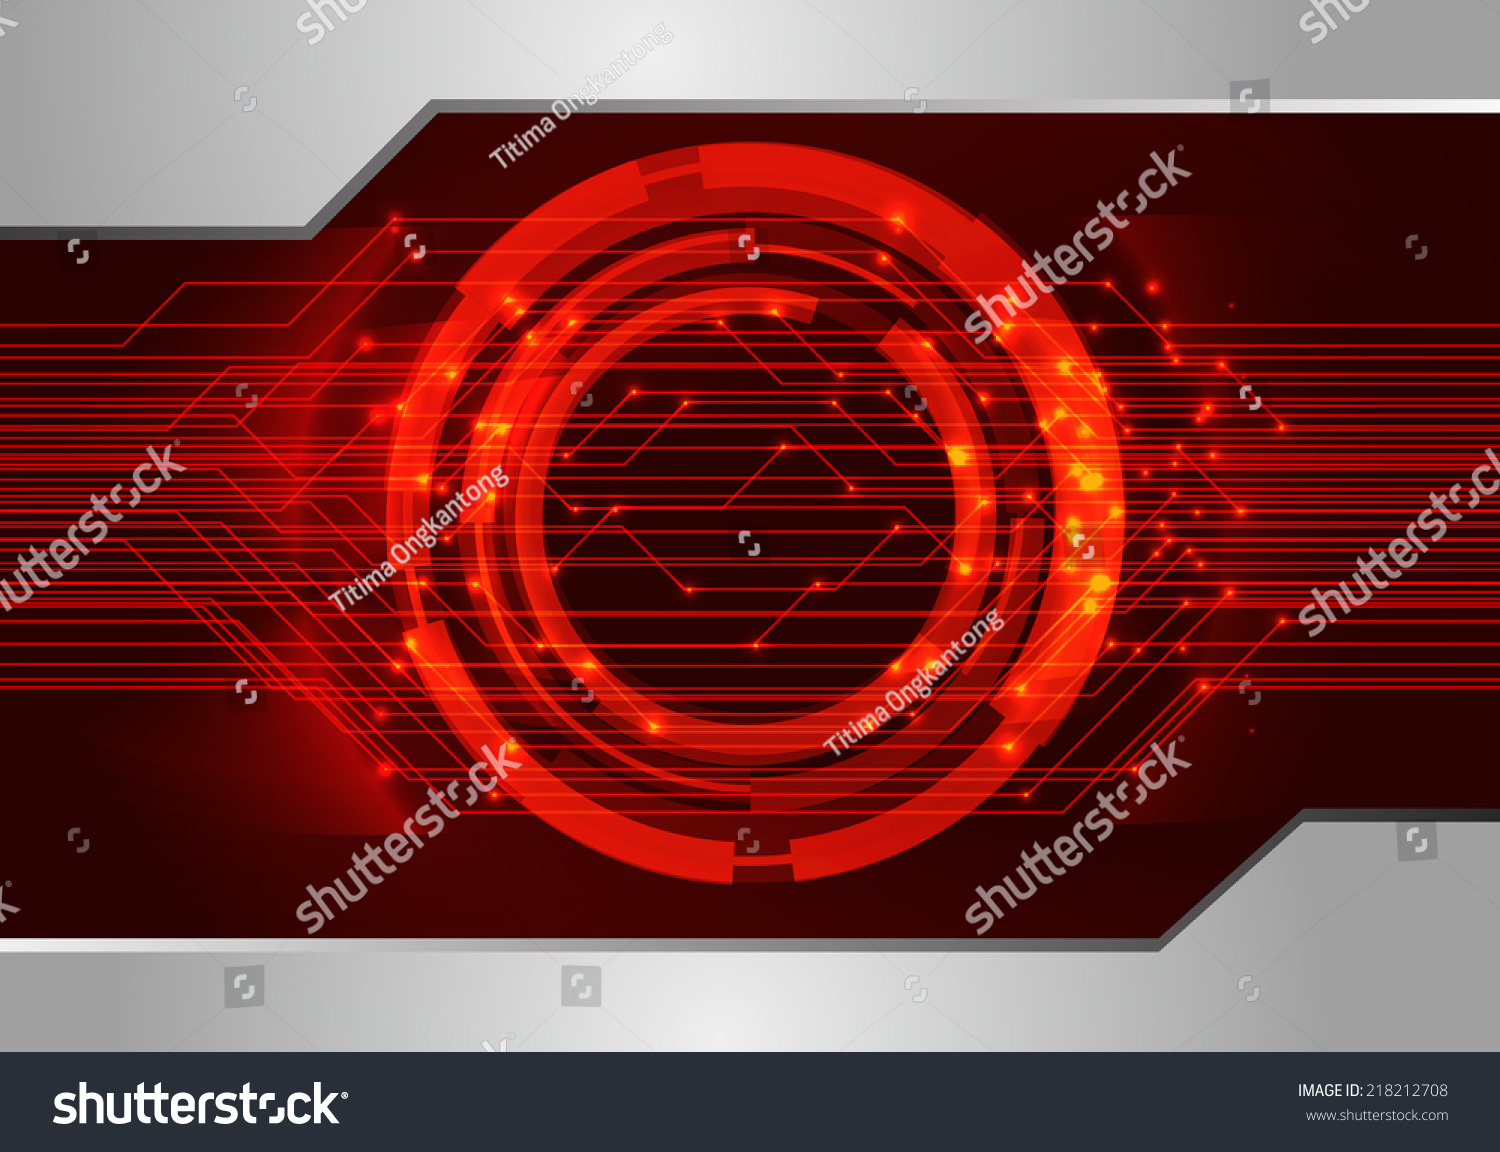 Dark Red Light Abstract Technology Background For Computer Graphic Printed Electrical Circuit Board Heart Symbol Vector Website And Internet Ez Canvas